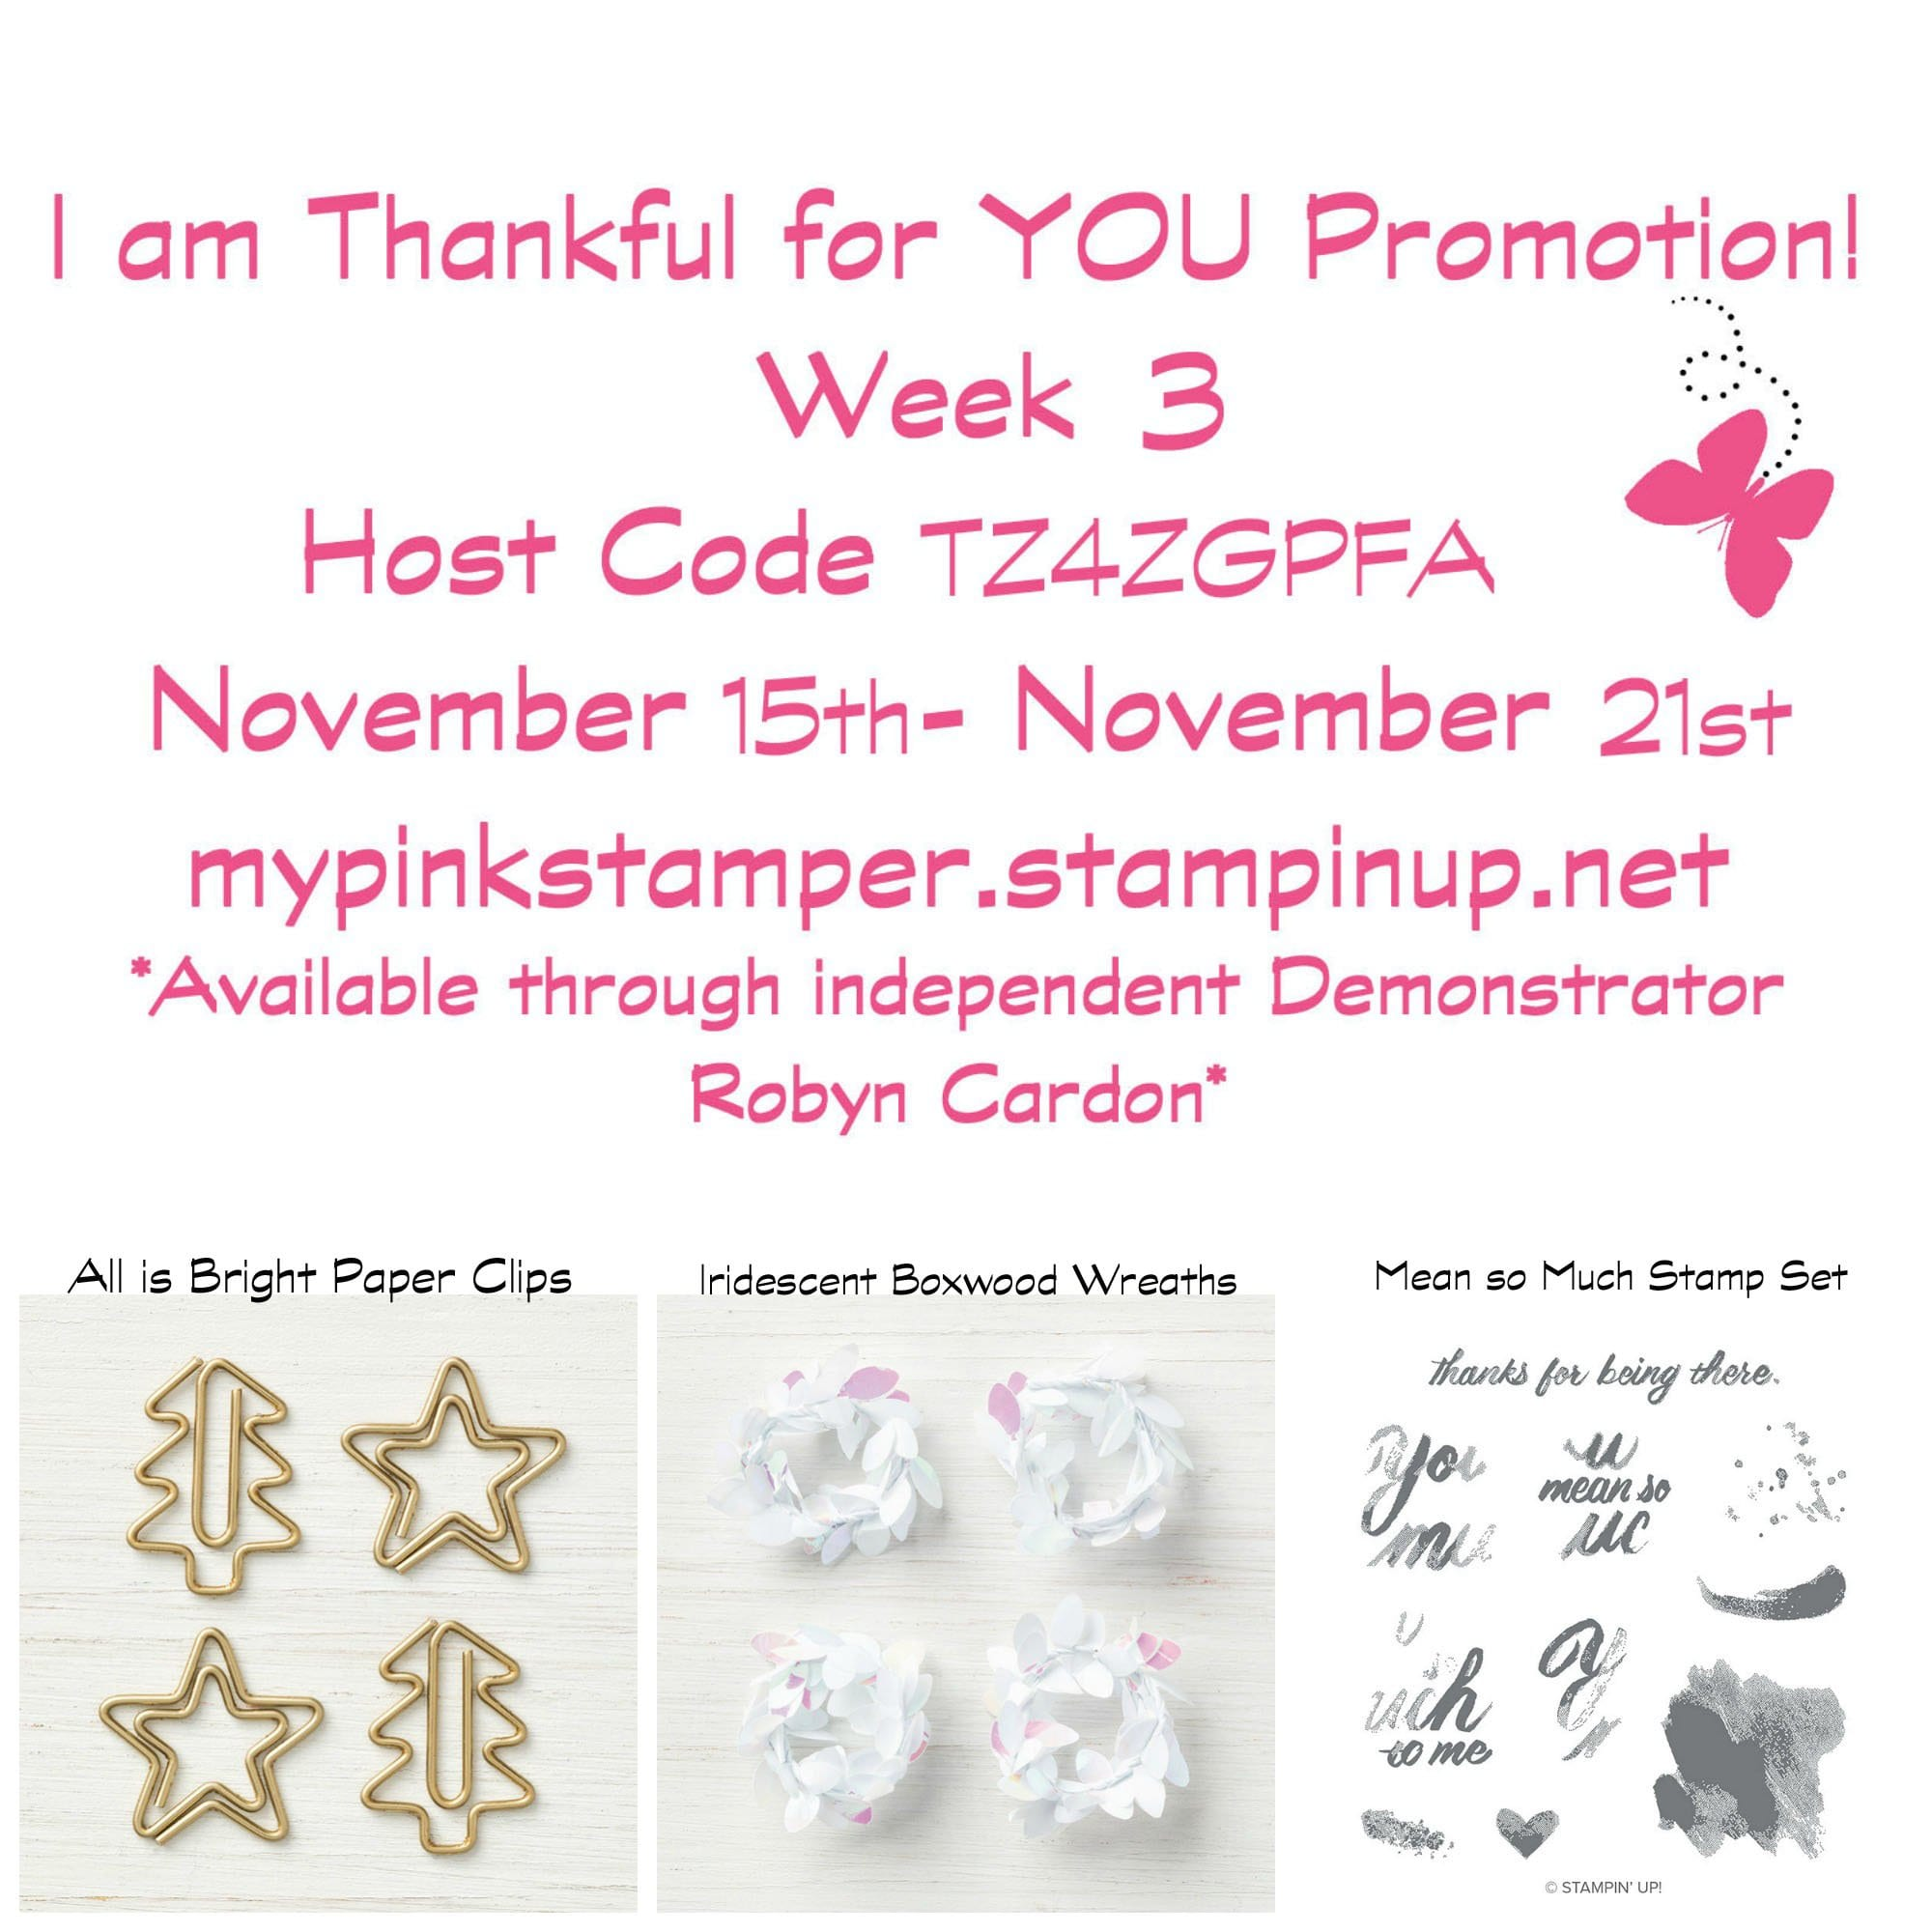 Week 3 of I am Thankful for You Promotion with Giveaway & Winners!